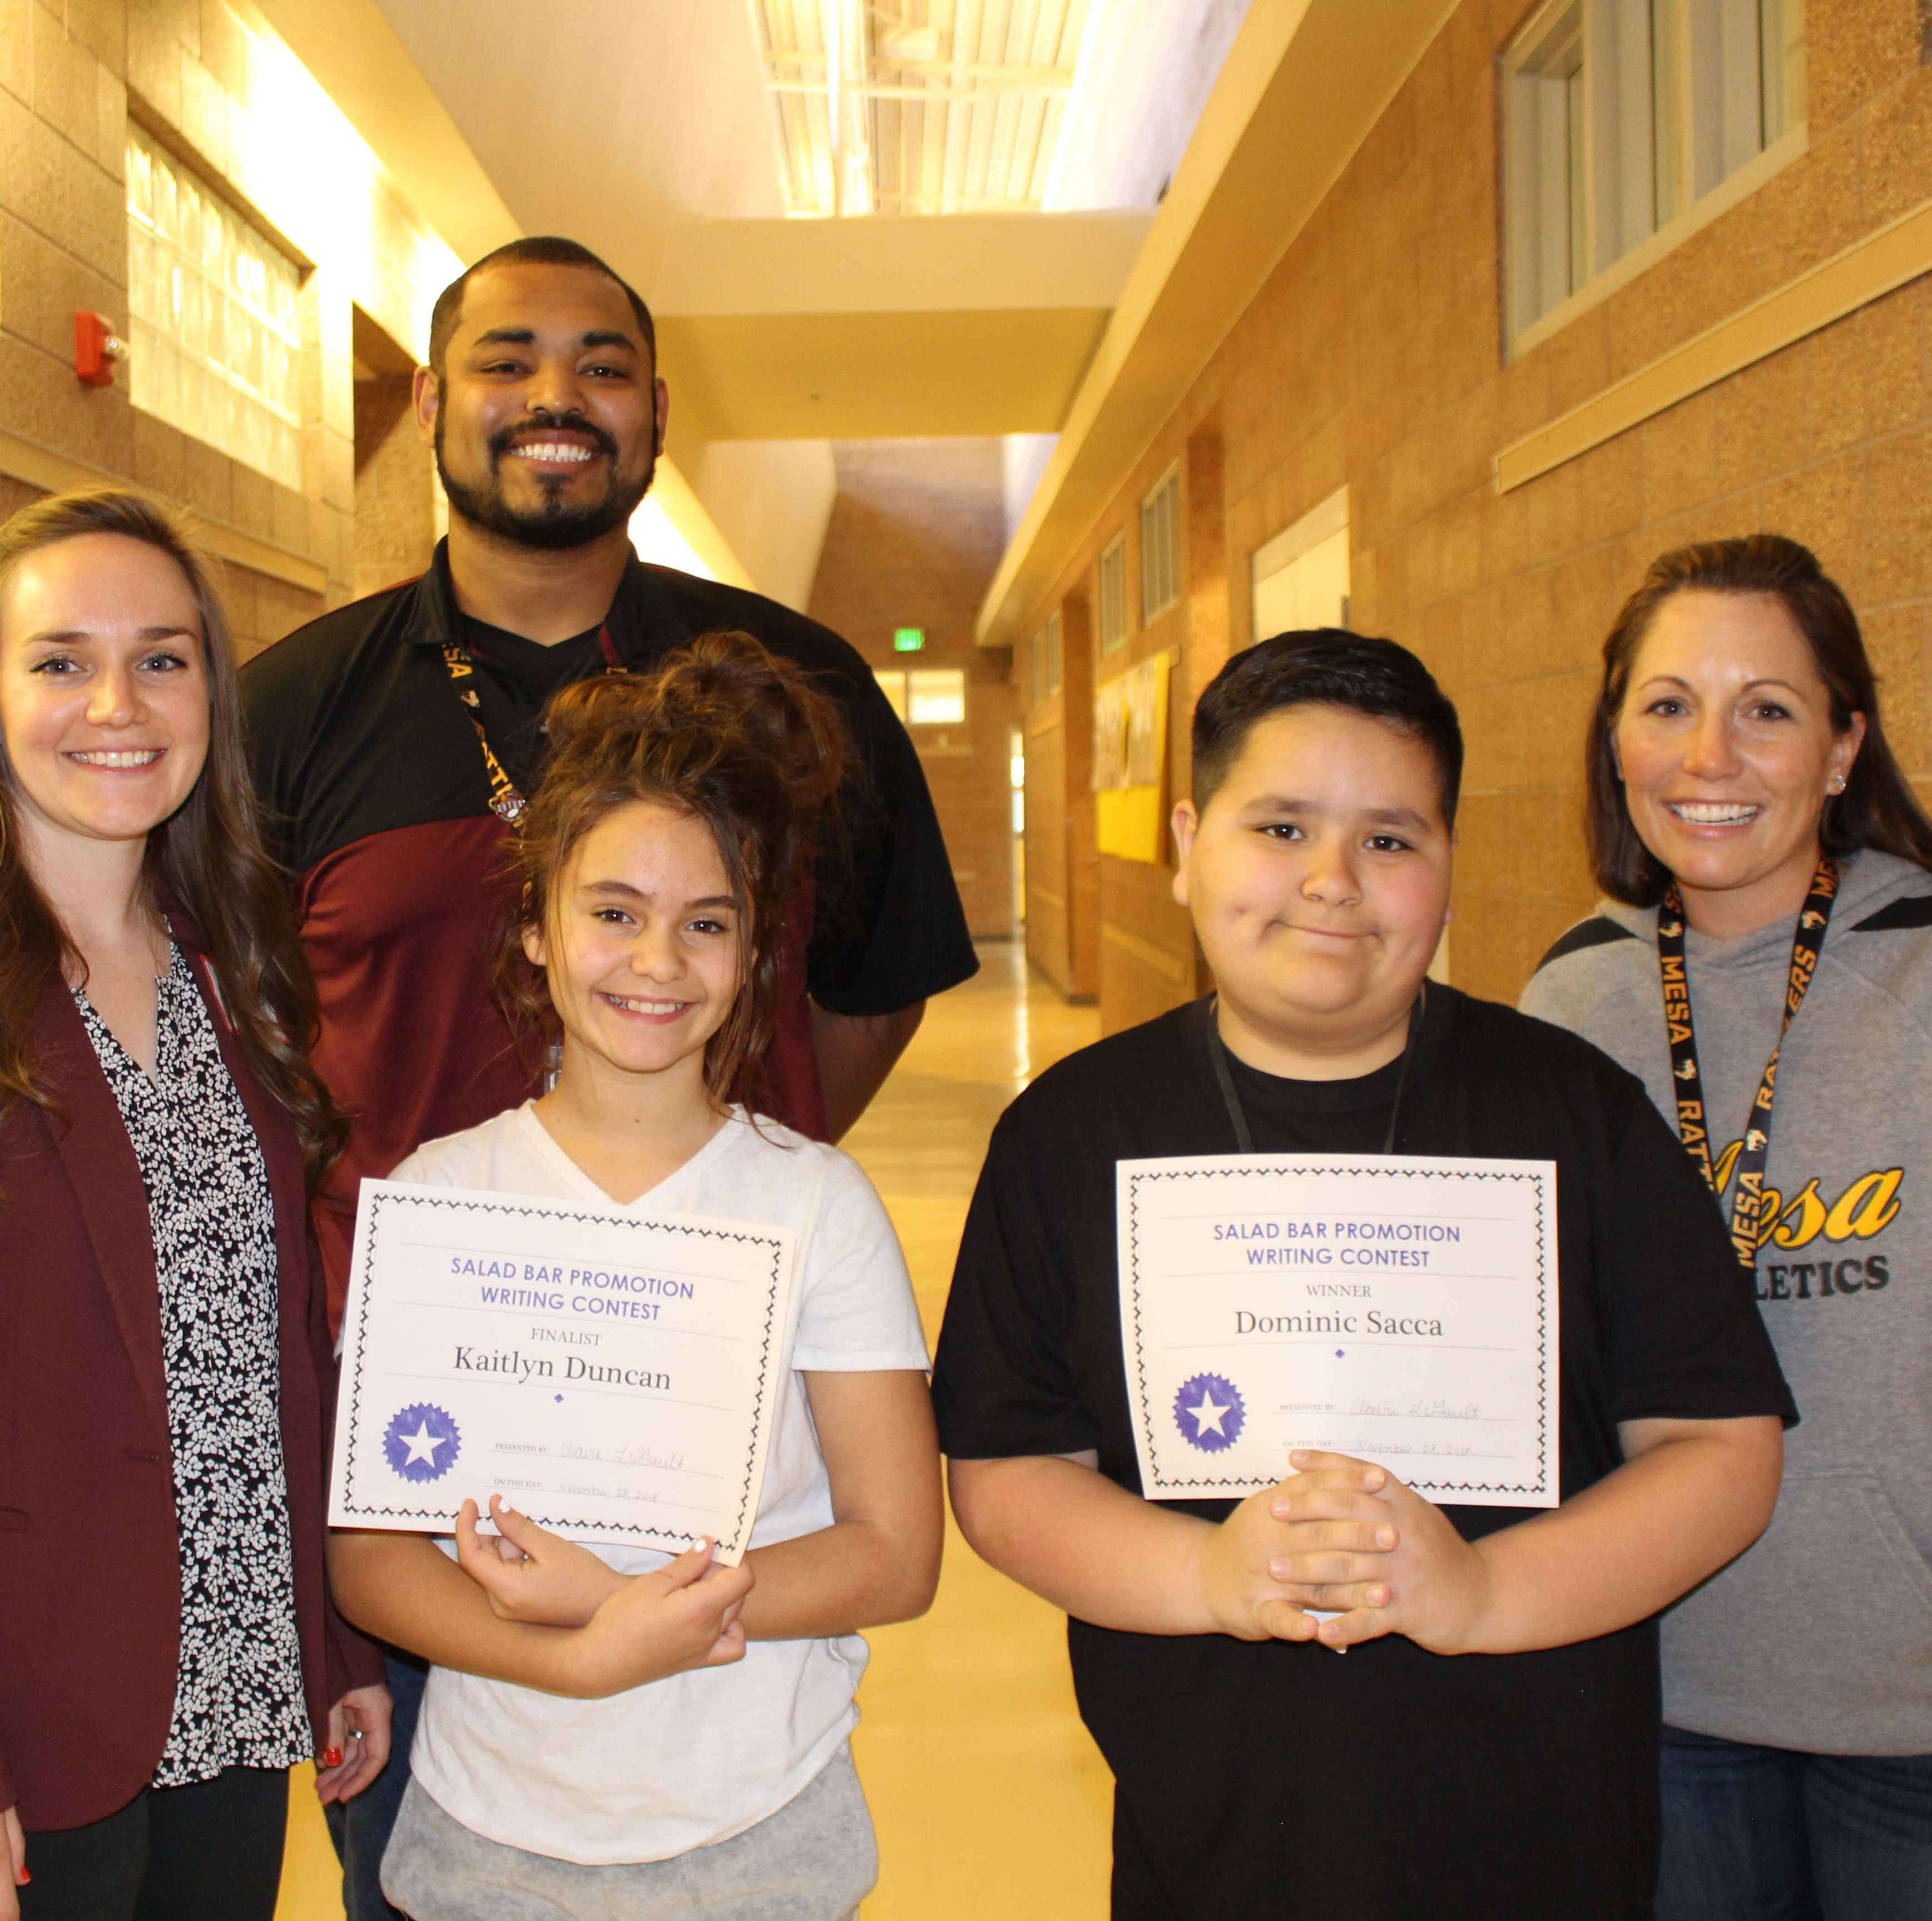 Las Cruces Public Schools salad bar contest winners announced